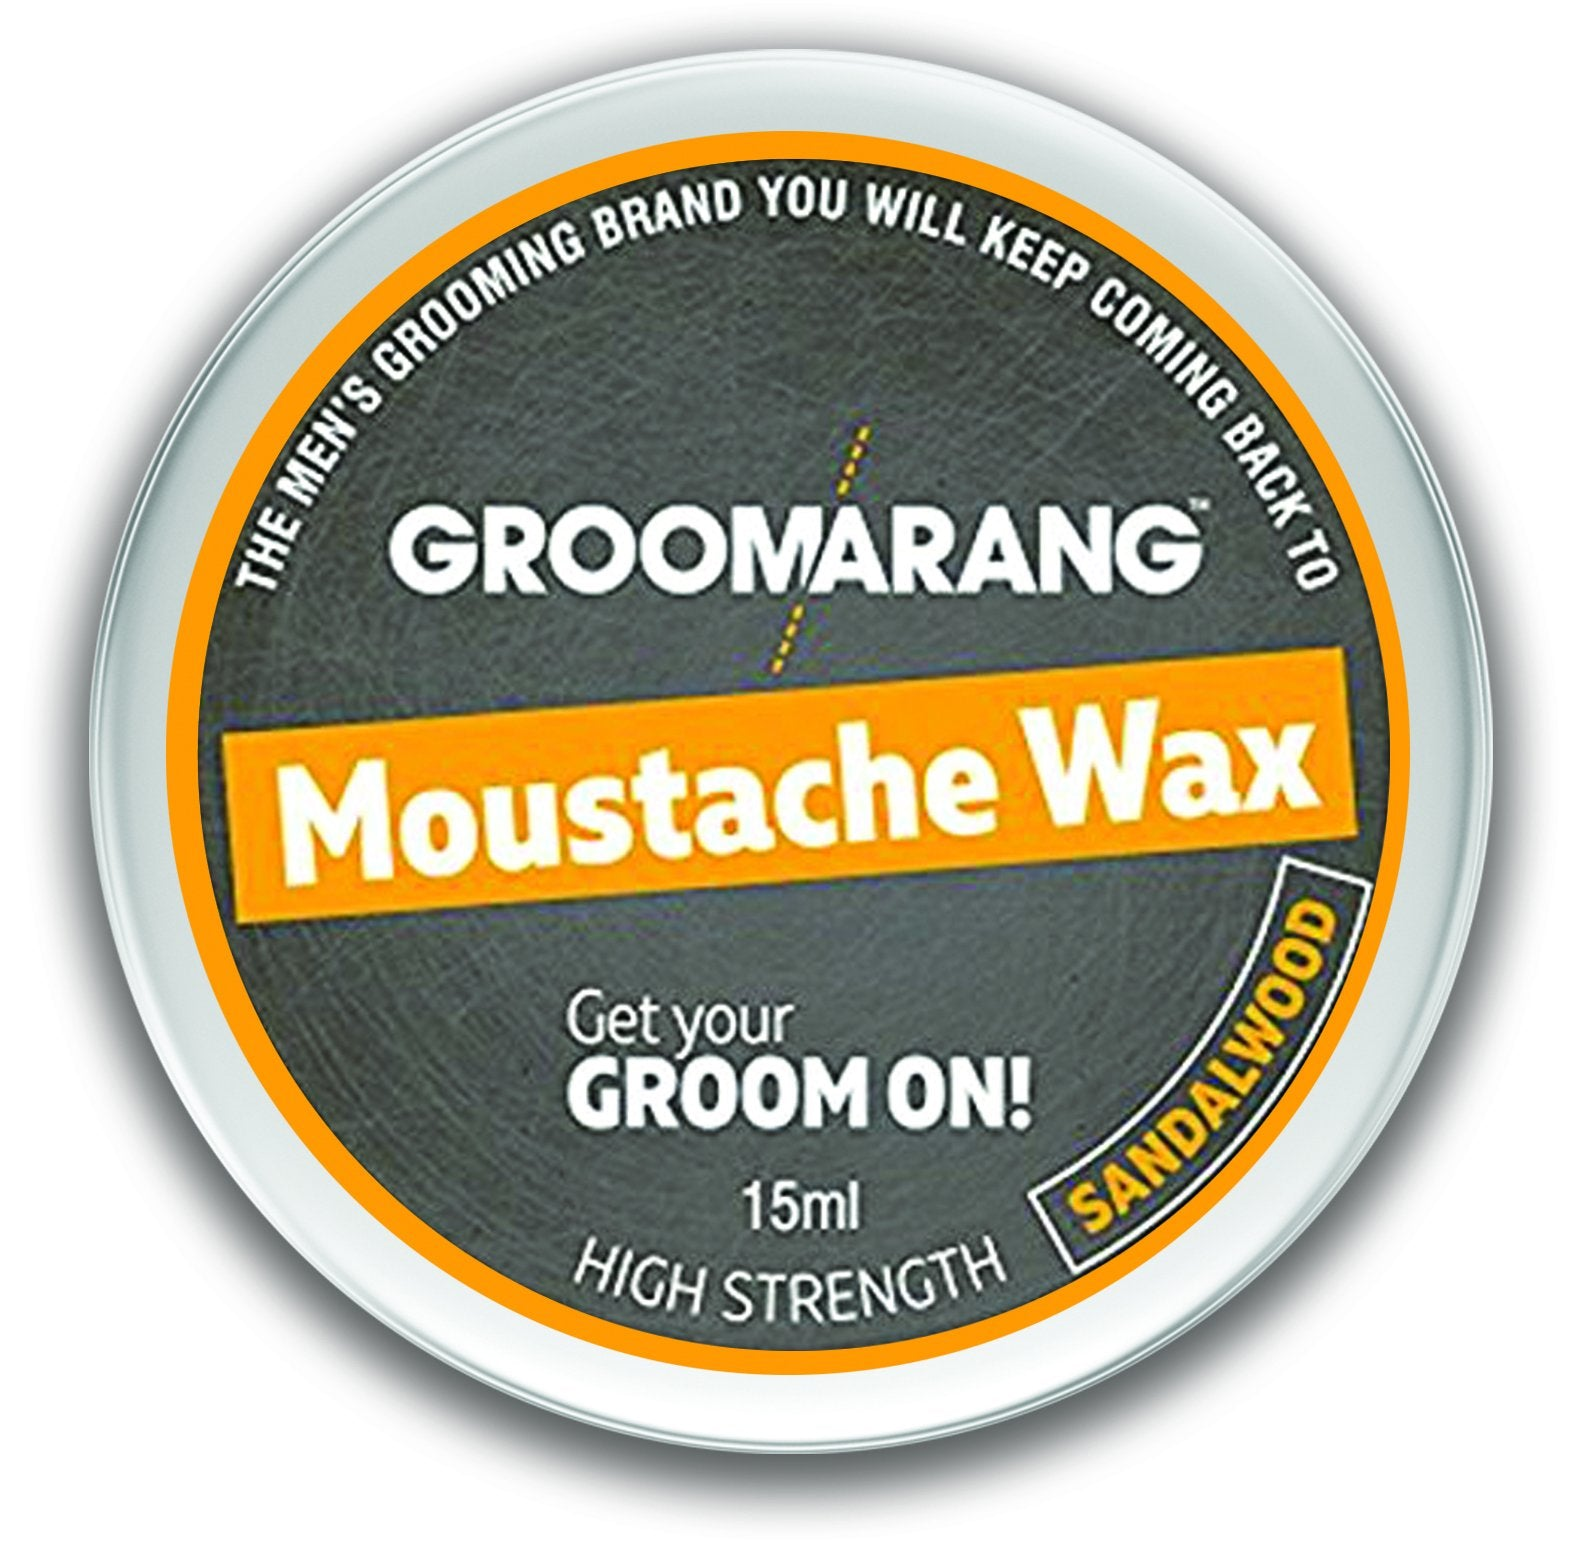 Groomarang Sandalwood Moustache Wax 15ml, Hair Styling Products by Forever Cosmetics